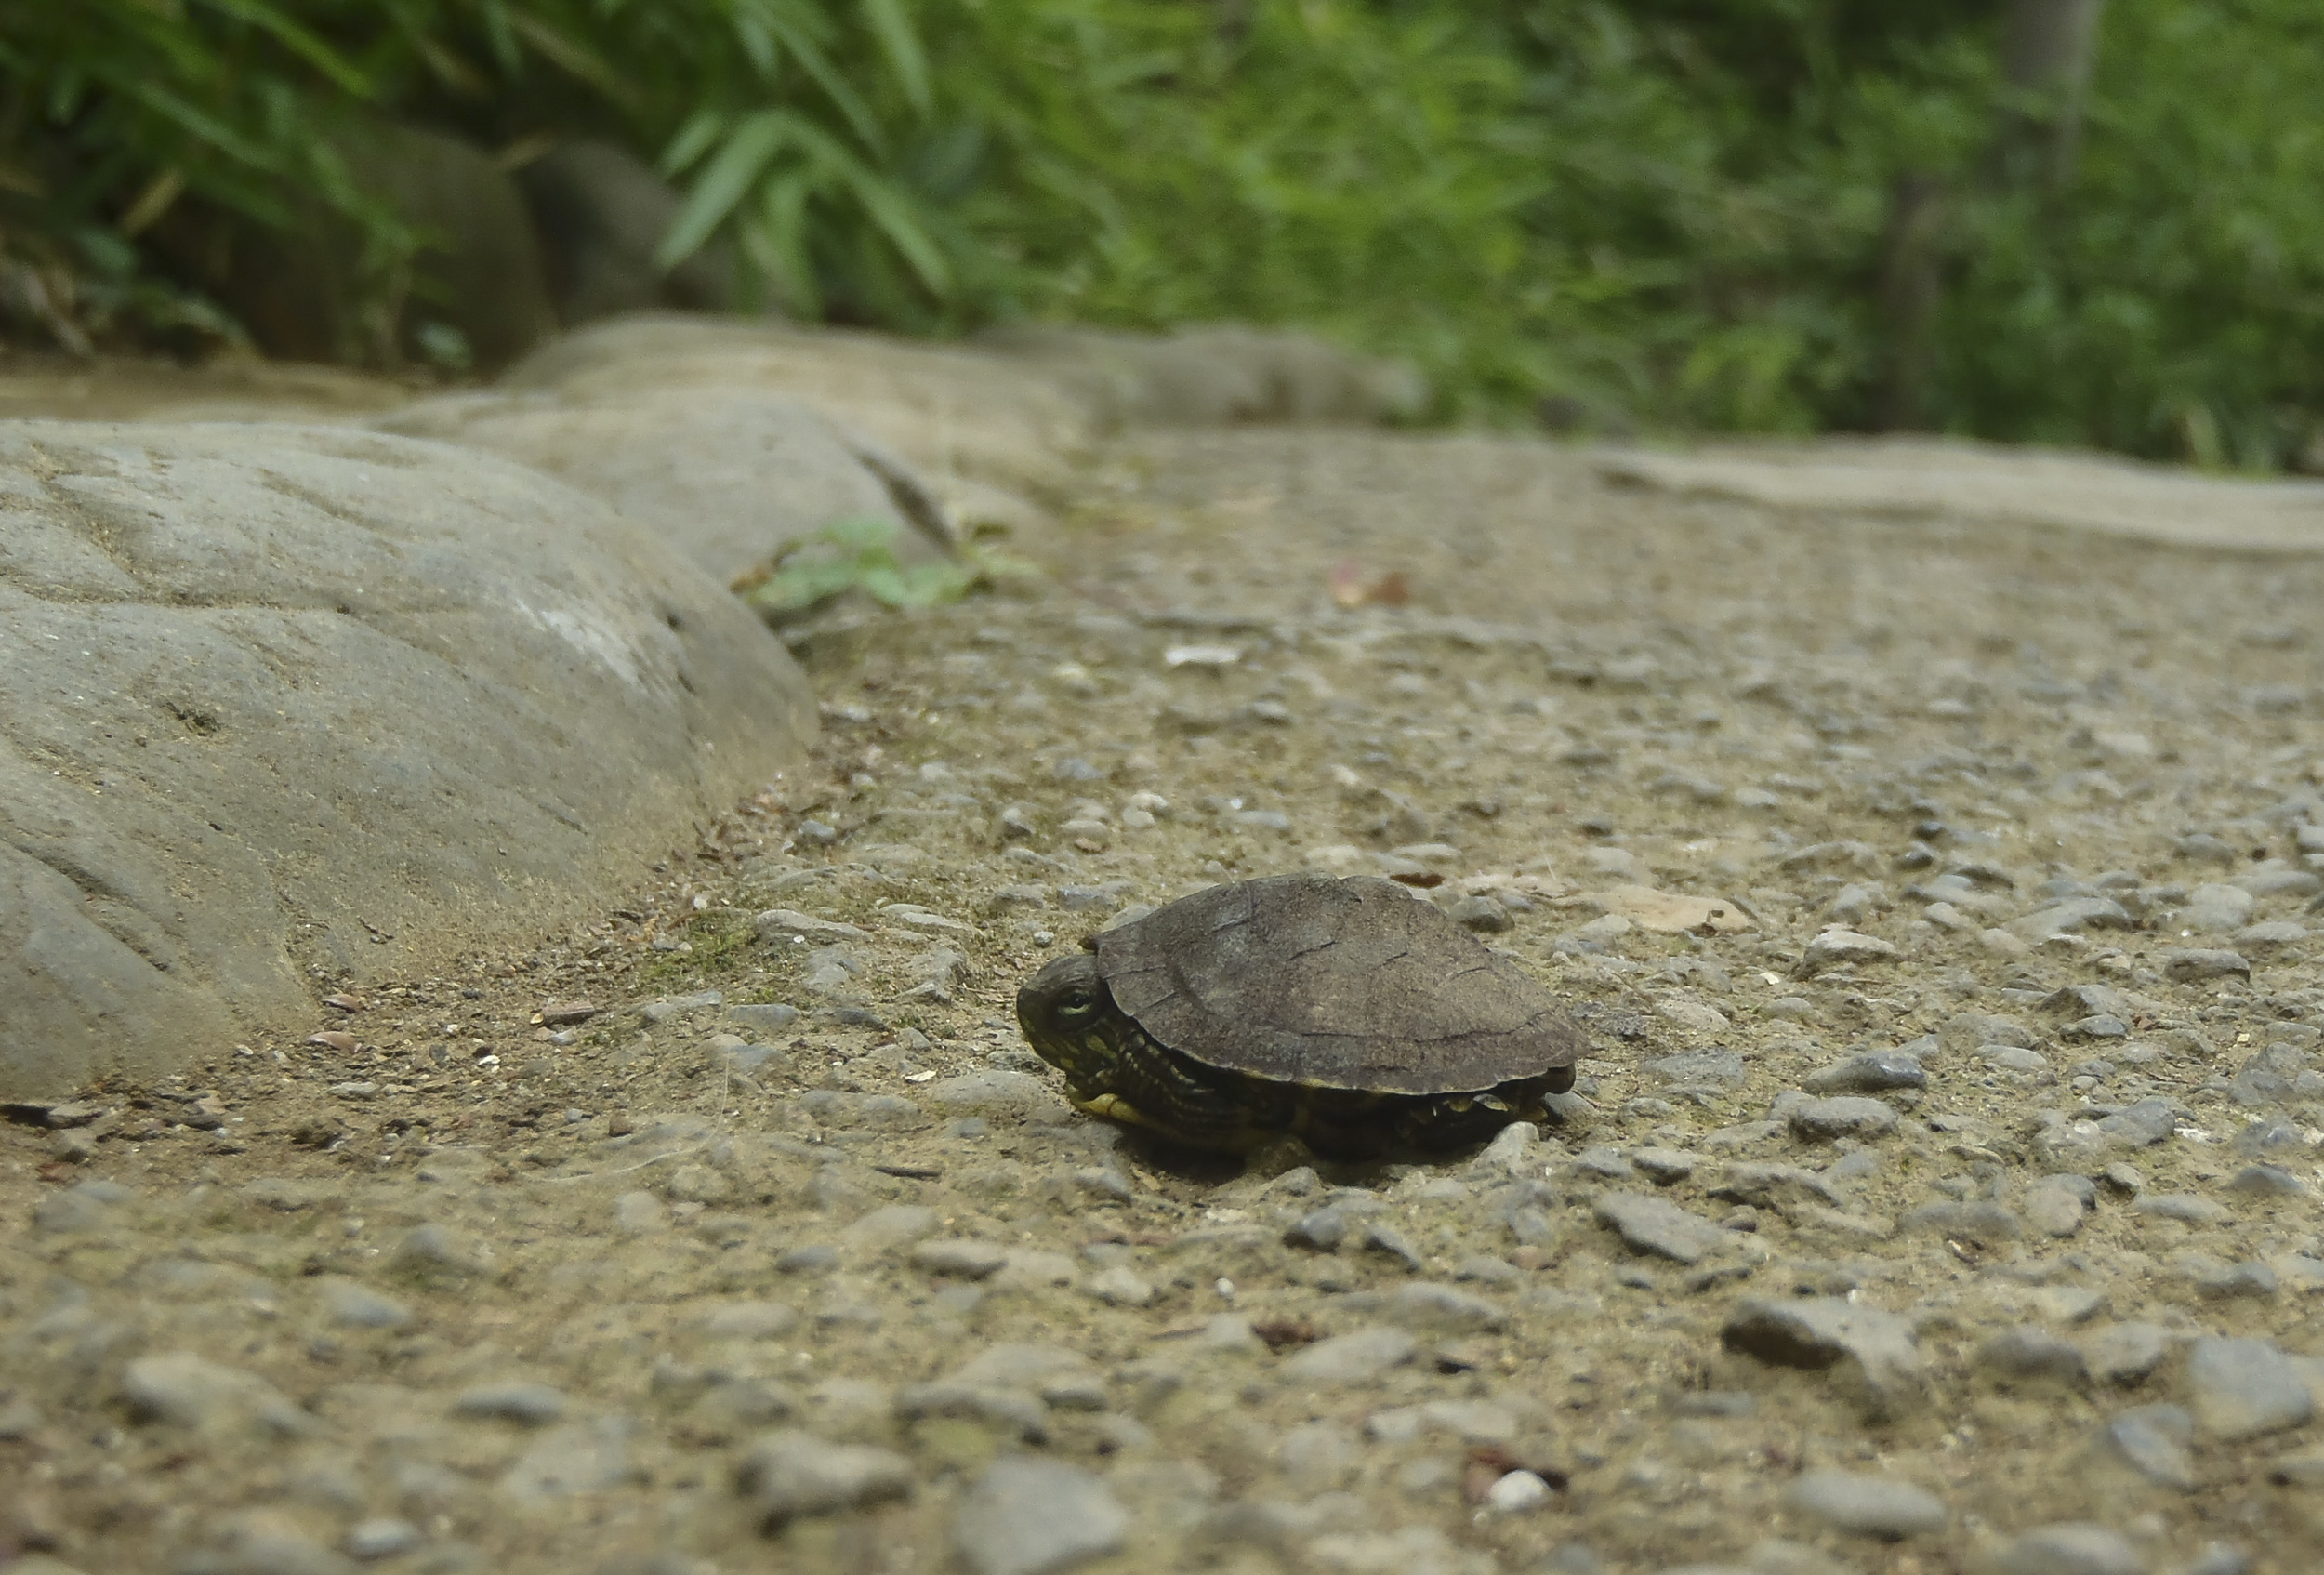 A turtle goes inside its shell May 25, 2015, on a walkway in the Arisugawa Park, Minato, Japan. A variety of wildlife calls the park home. (U.S. Air Force photo by Senior Airman David Owsianka/Released)